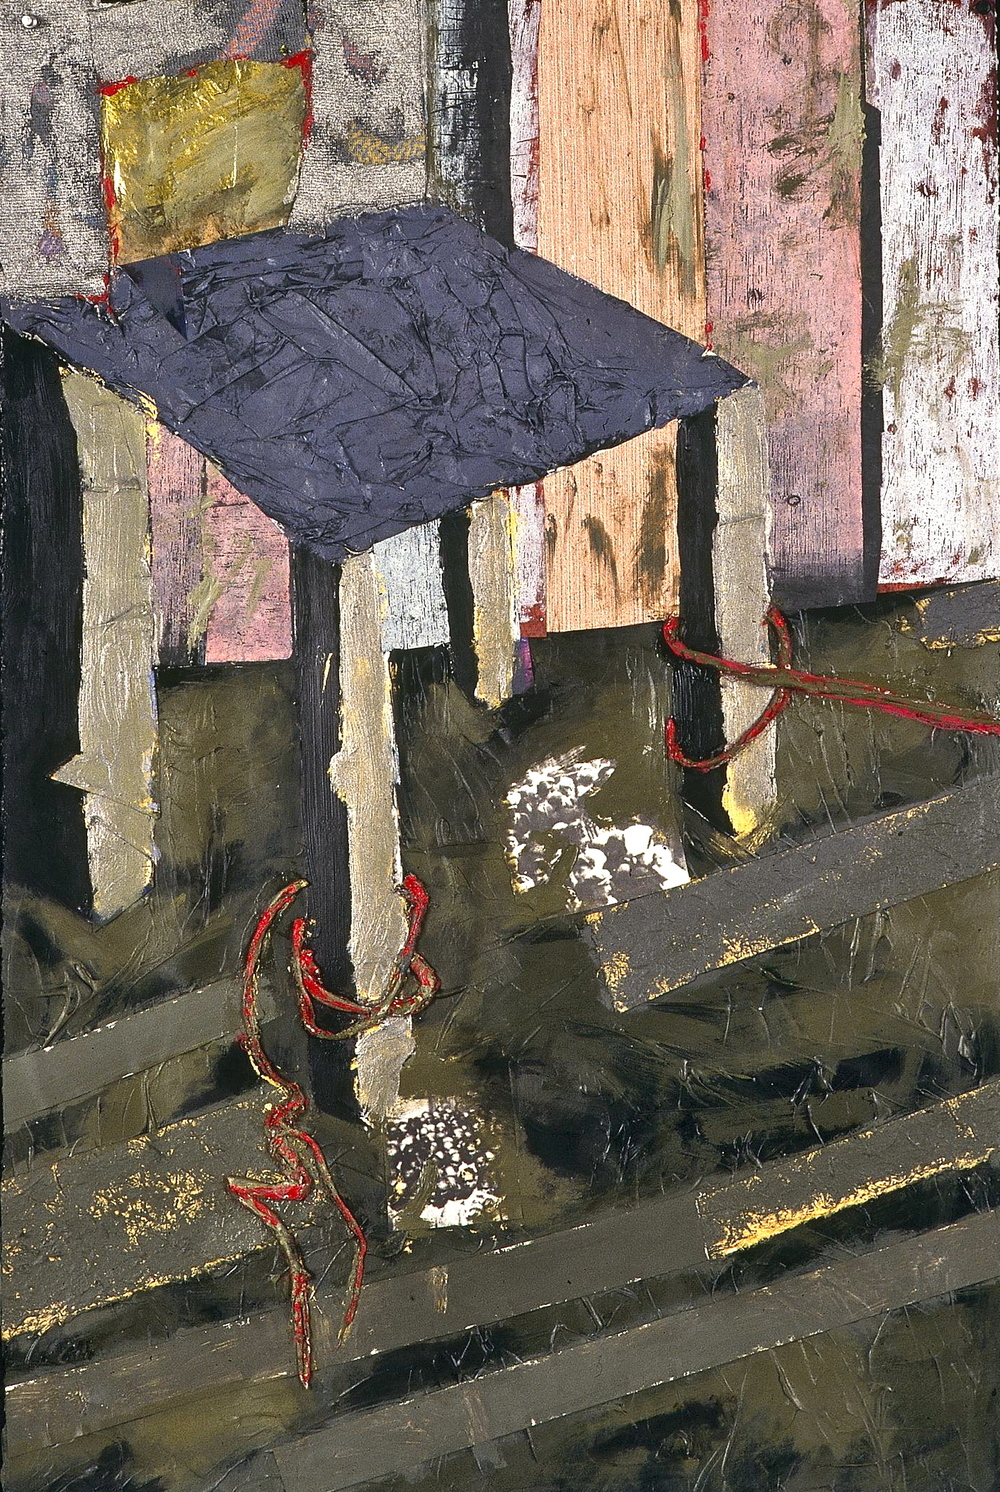 """Waiting Room III,"" Susan Hoffman Fishman, Acrylic and Mixed Media on Paper, 1992, Collection of the William Benton Museum of Art, University of Connecticut, Storrs, CT."